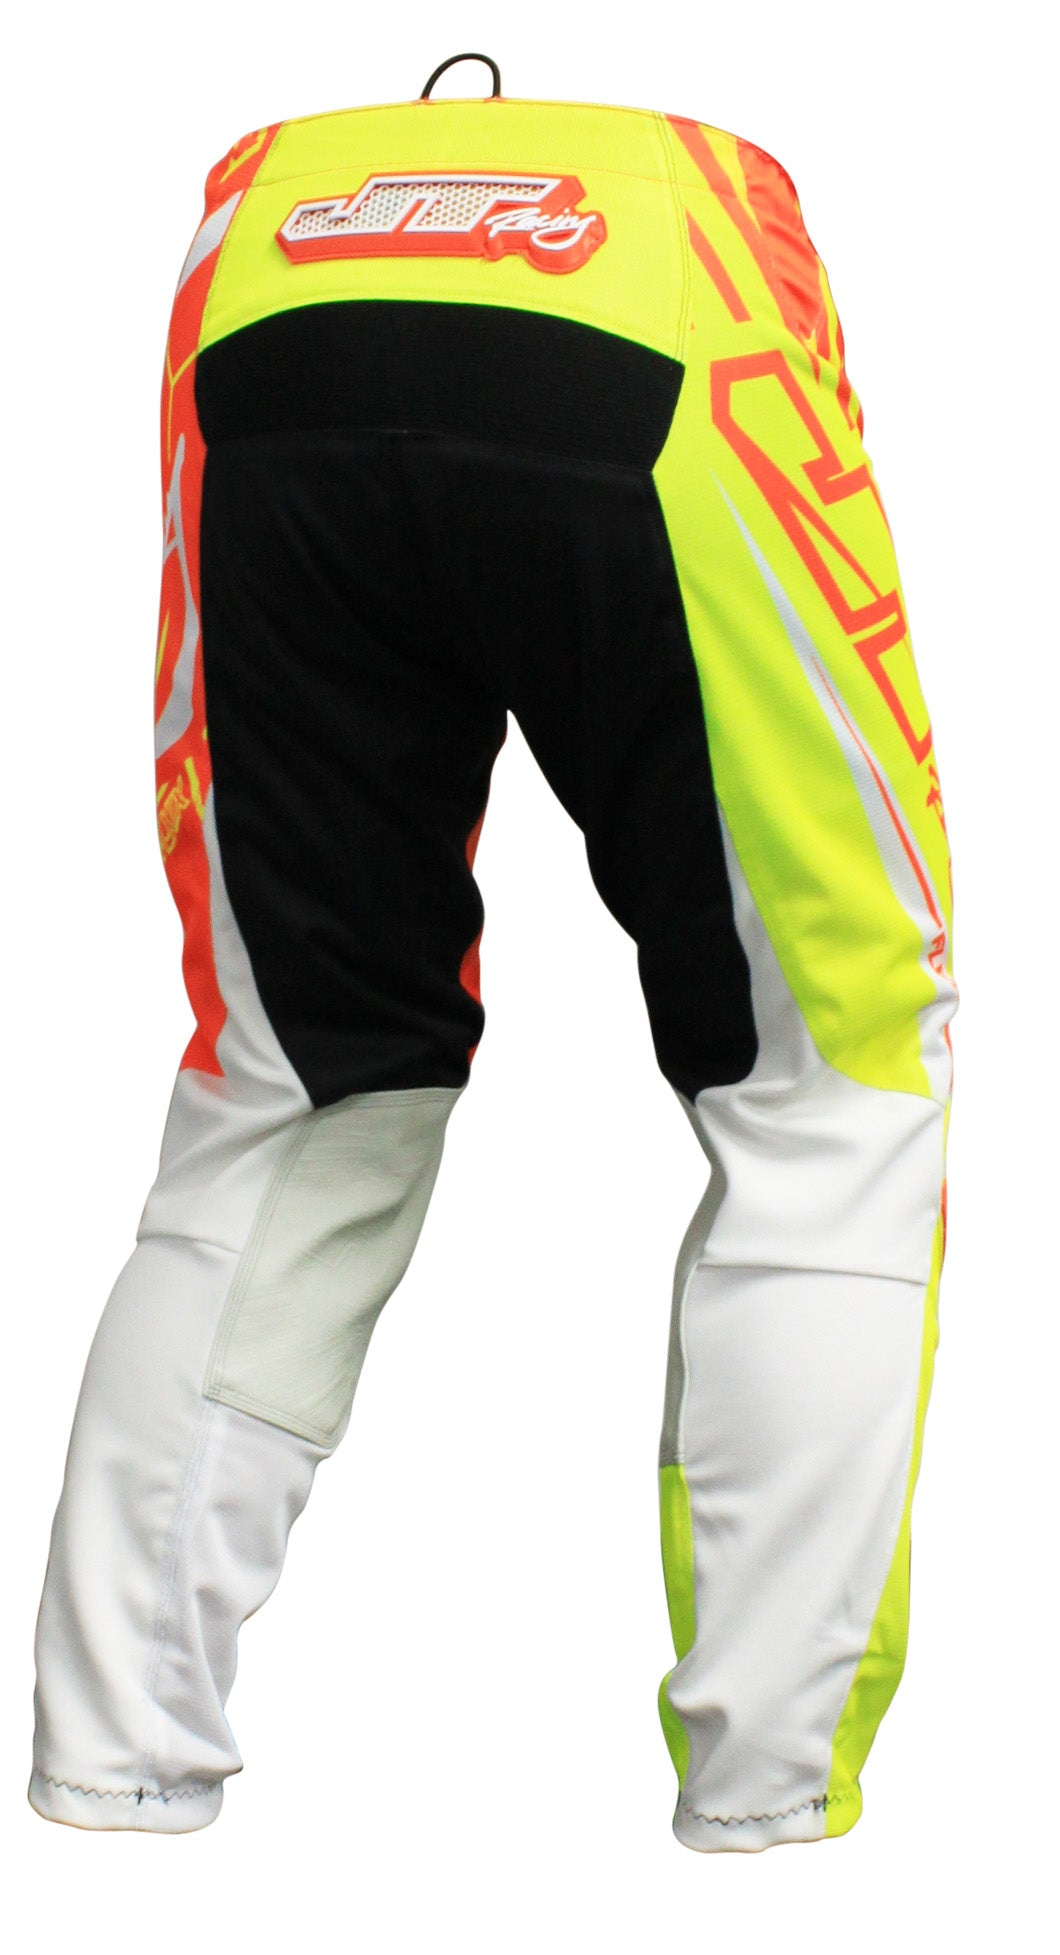 JT RACING USA-2017 Flex-Victory Pants, Neon Yellow/Orange (Vented)